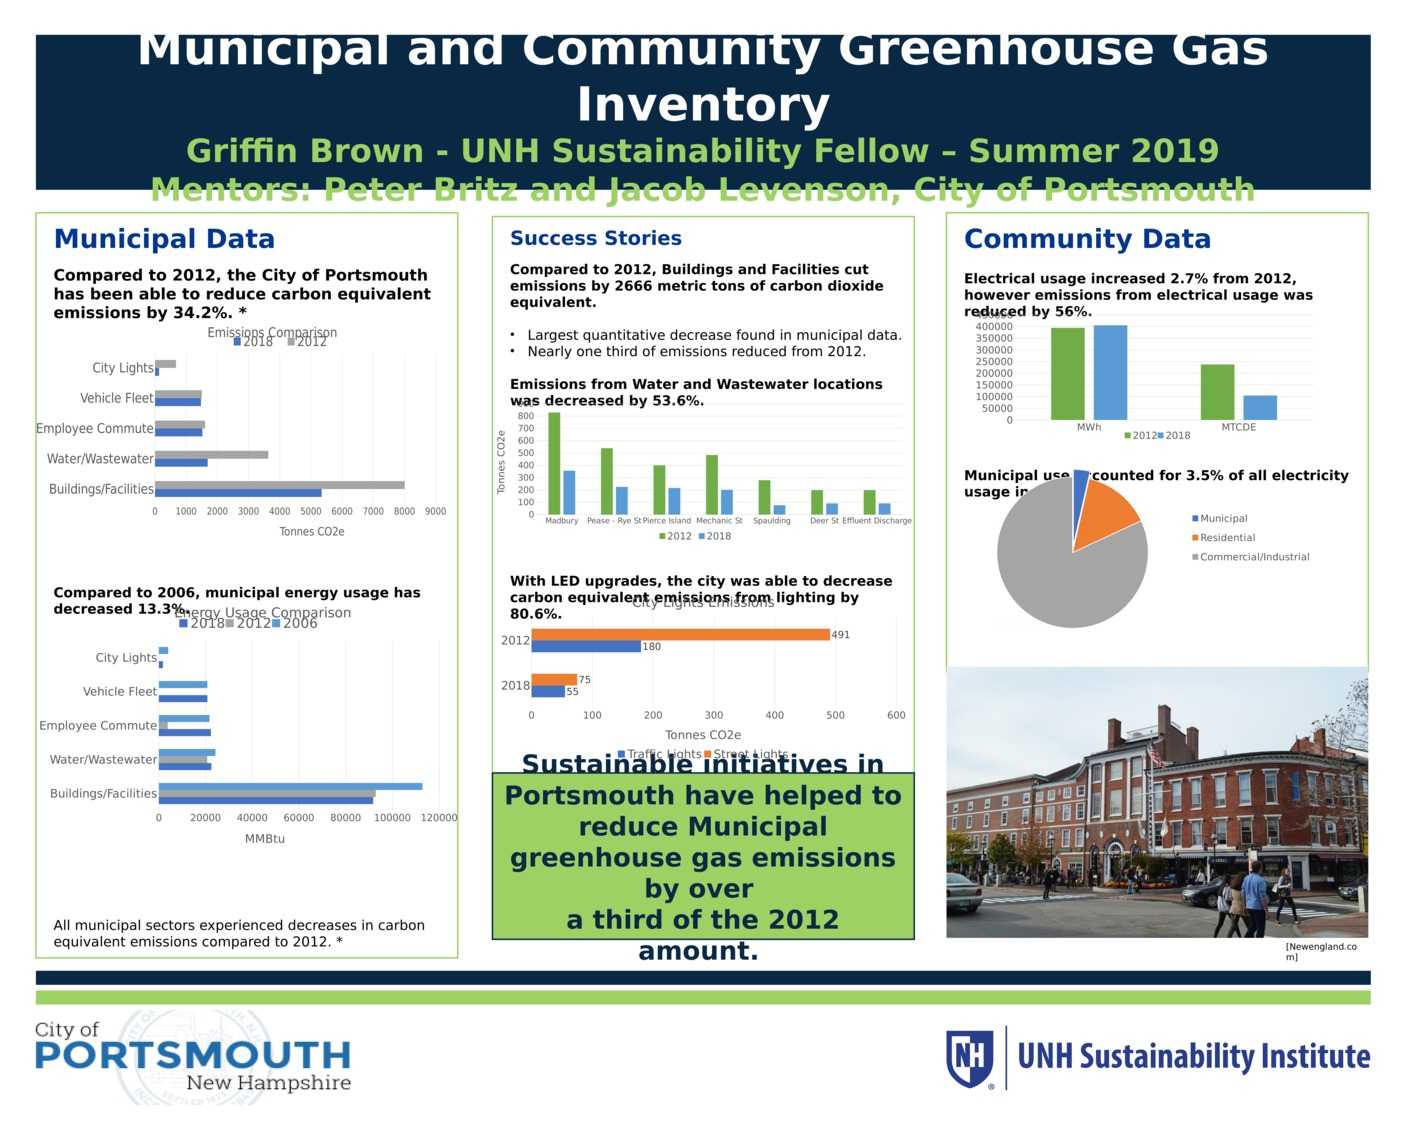 Municipal And Community Greenhouse Gas Inventory: Portsmouth New Hampshire by gb1094